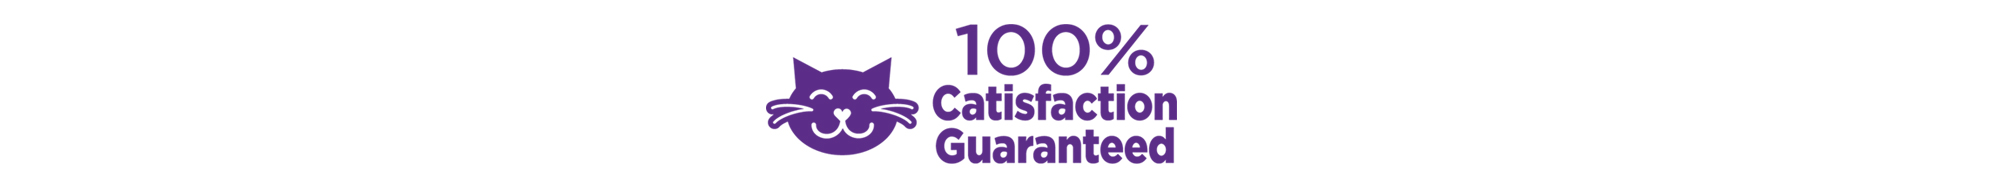 catisfaction guarantee wellness